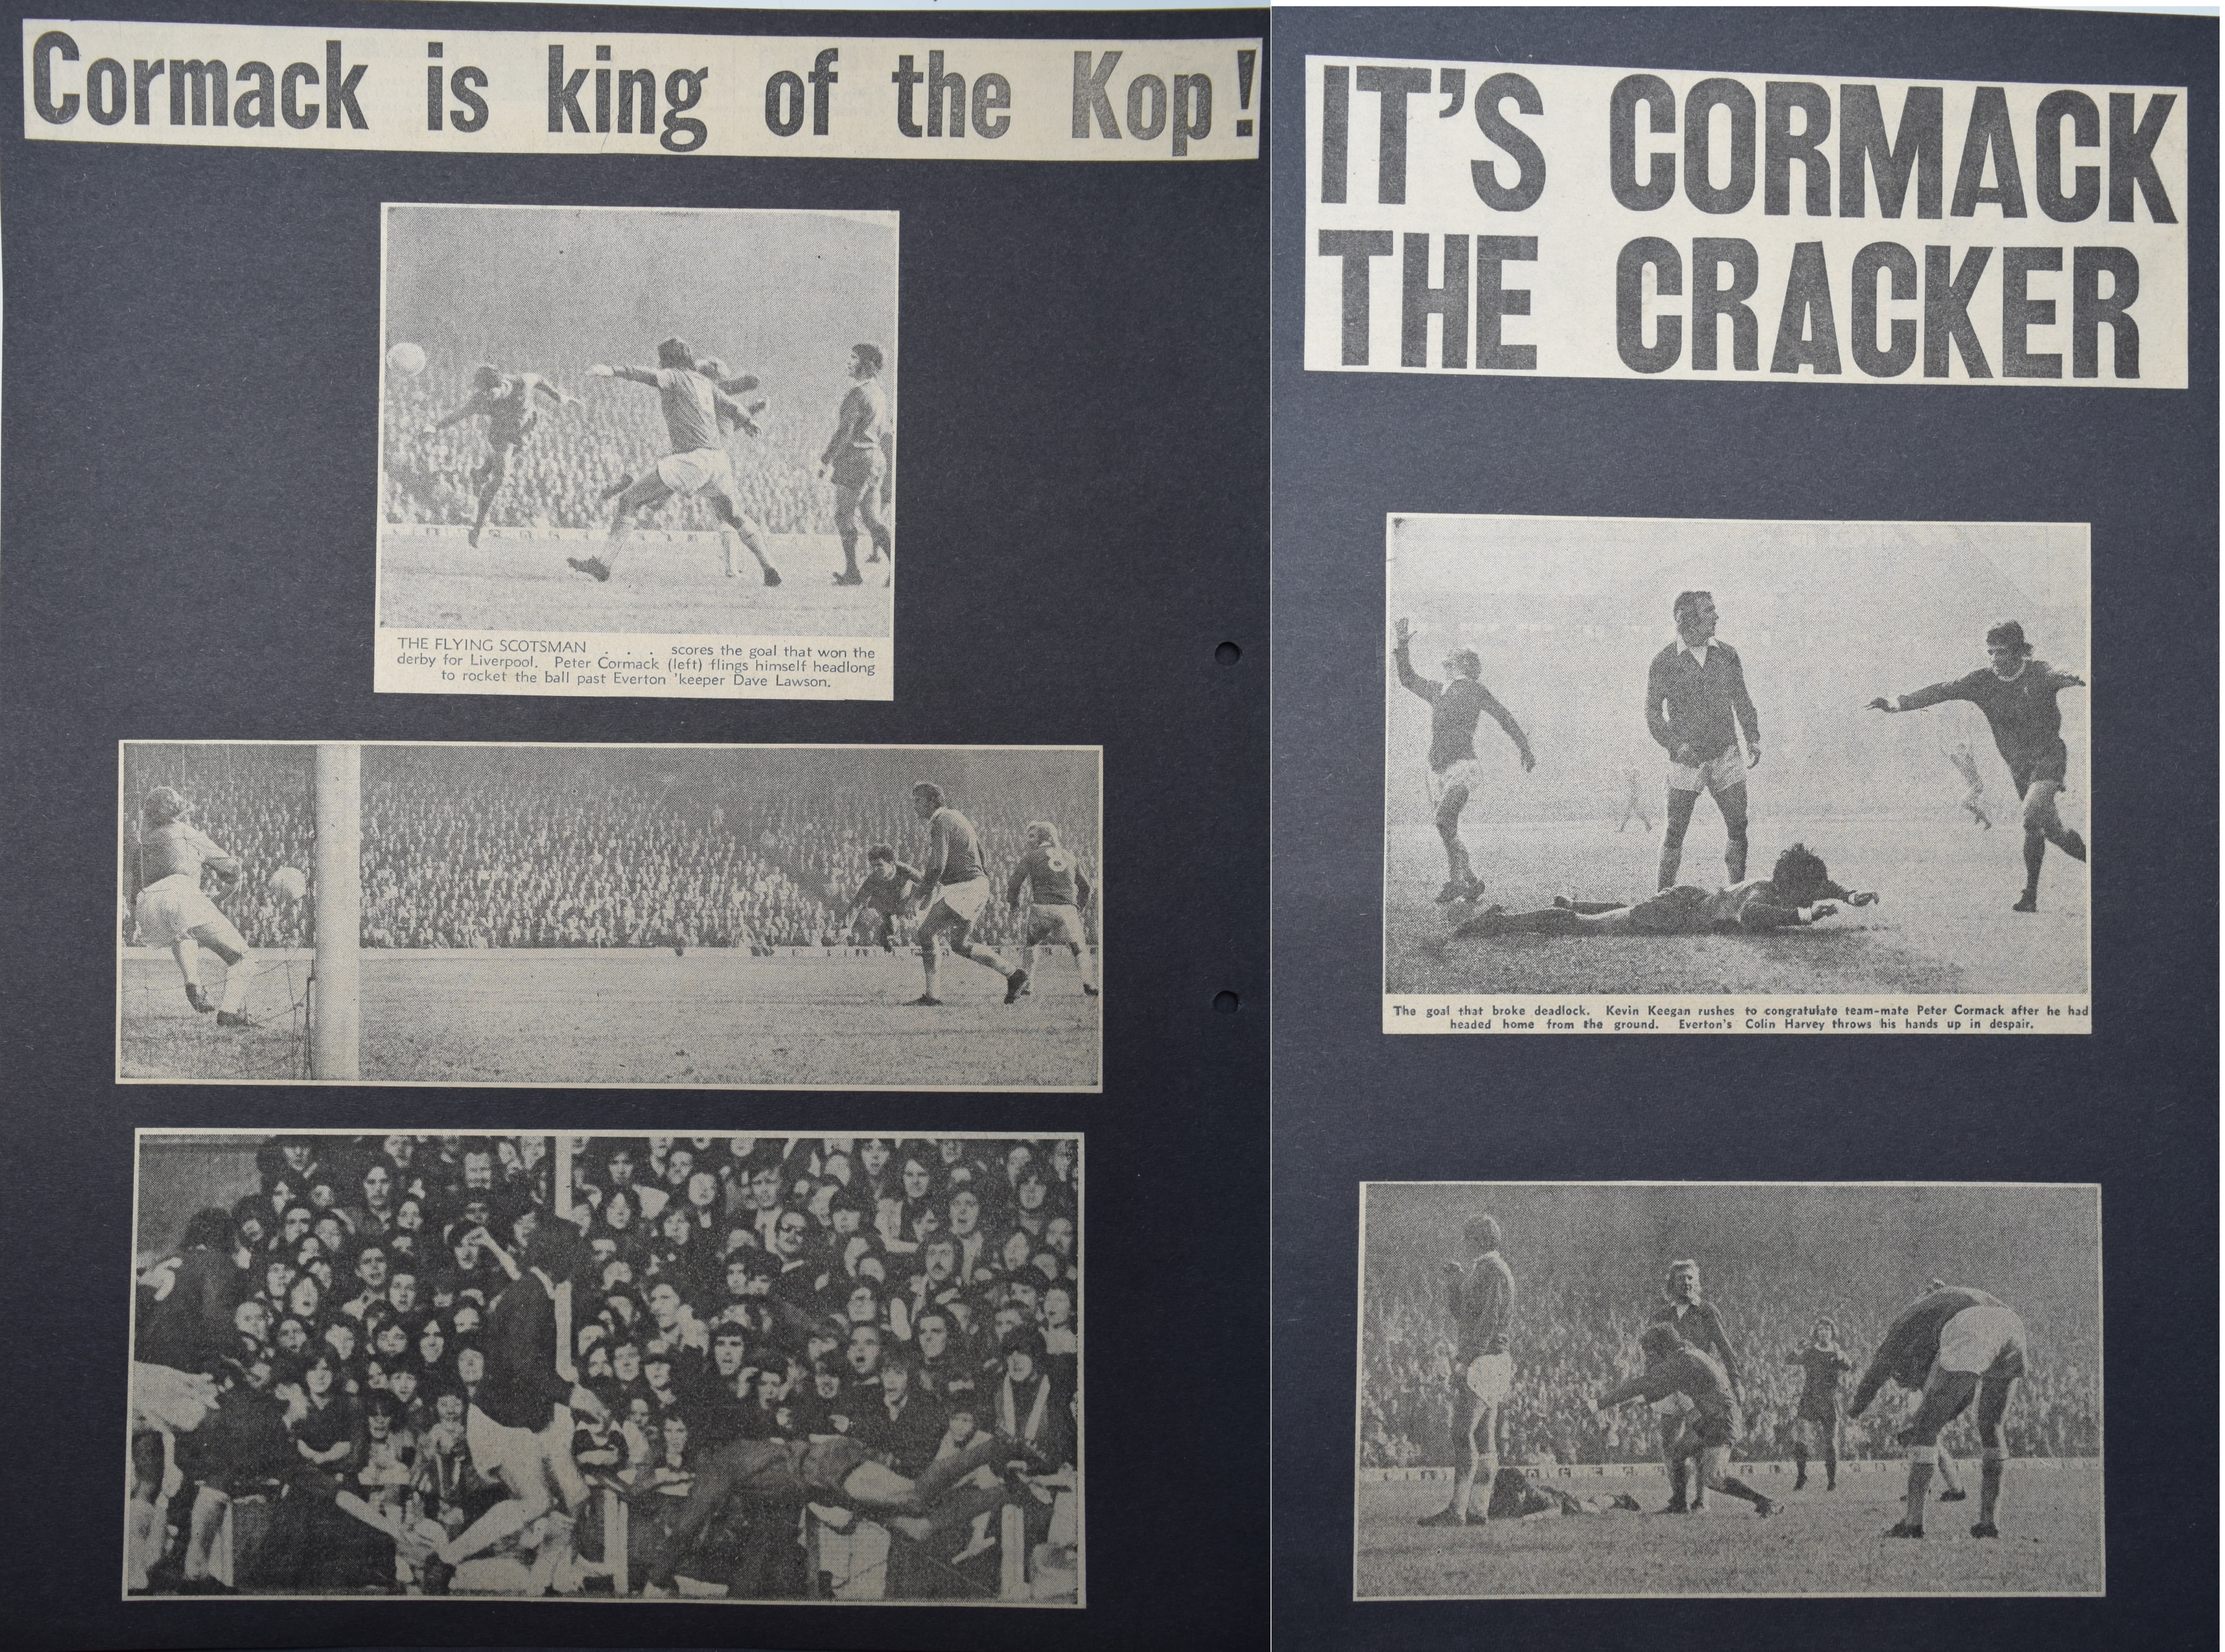 Cormack is king of the Kop! - 7 October 1972